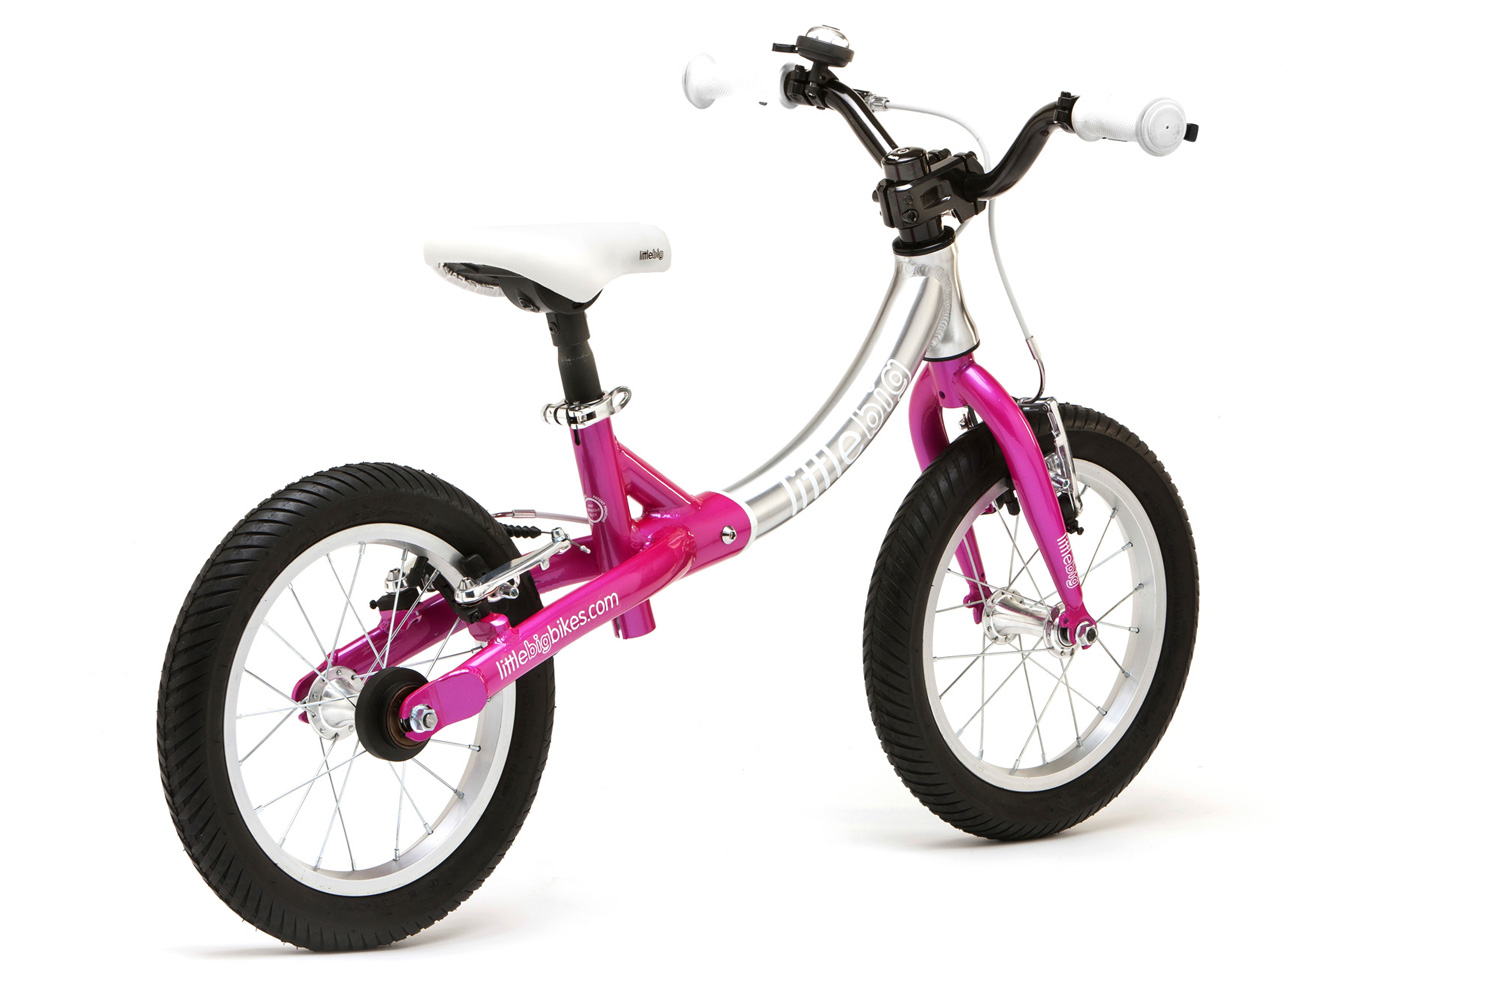 littlebig-big-balance-bike-sparkle-pink-back-view